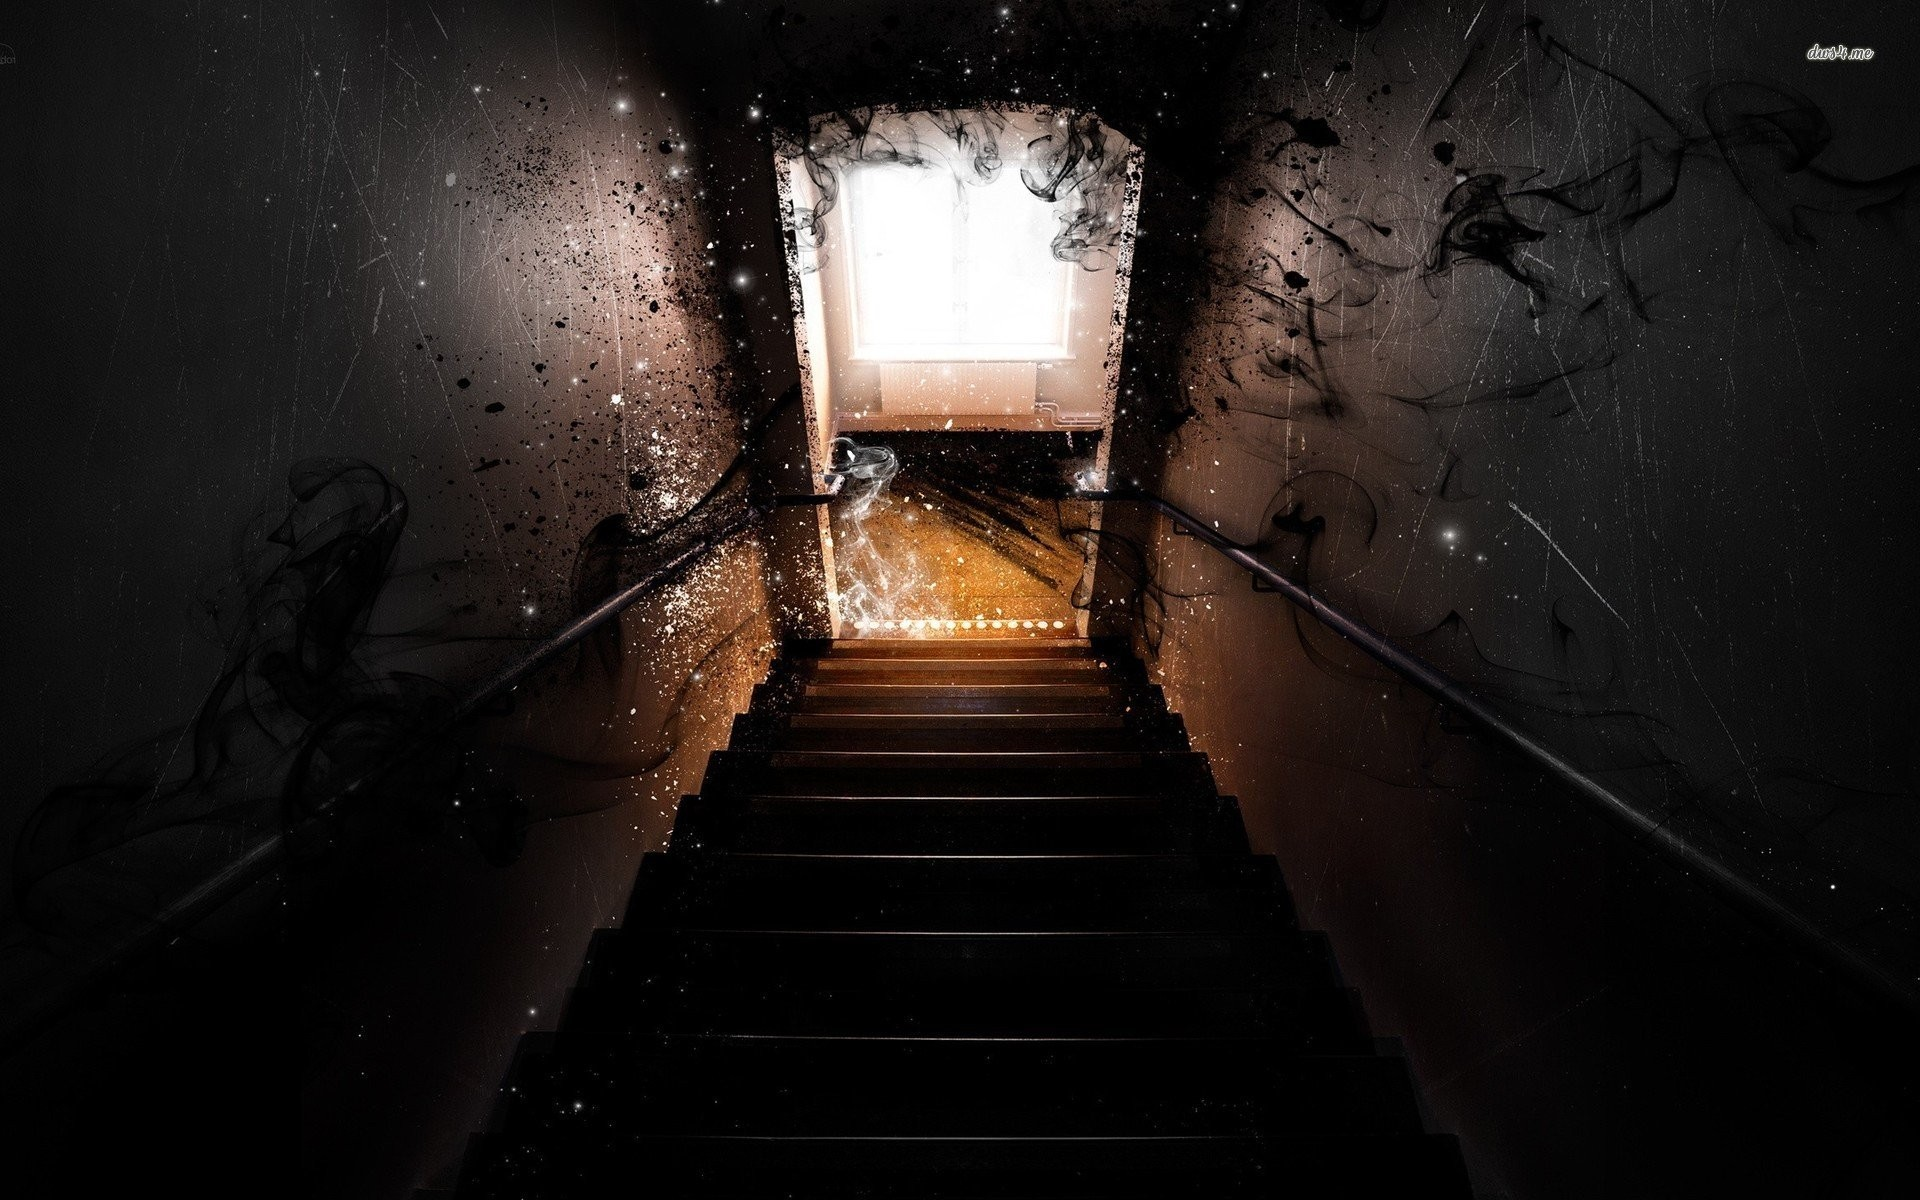 Wallpapers Download Best Horror Wallpapers For Mobile: 58+ Scary Wallpapers ·① Download Free Beautiful High